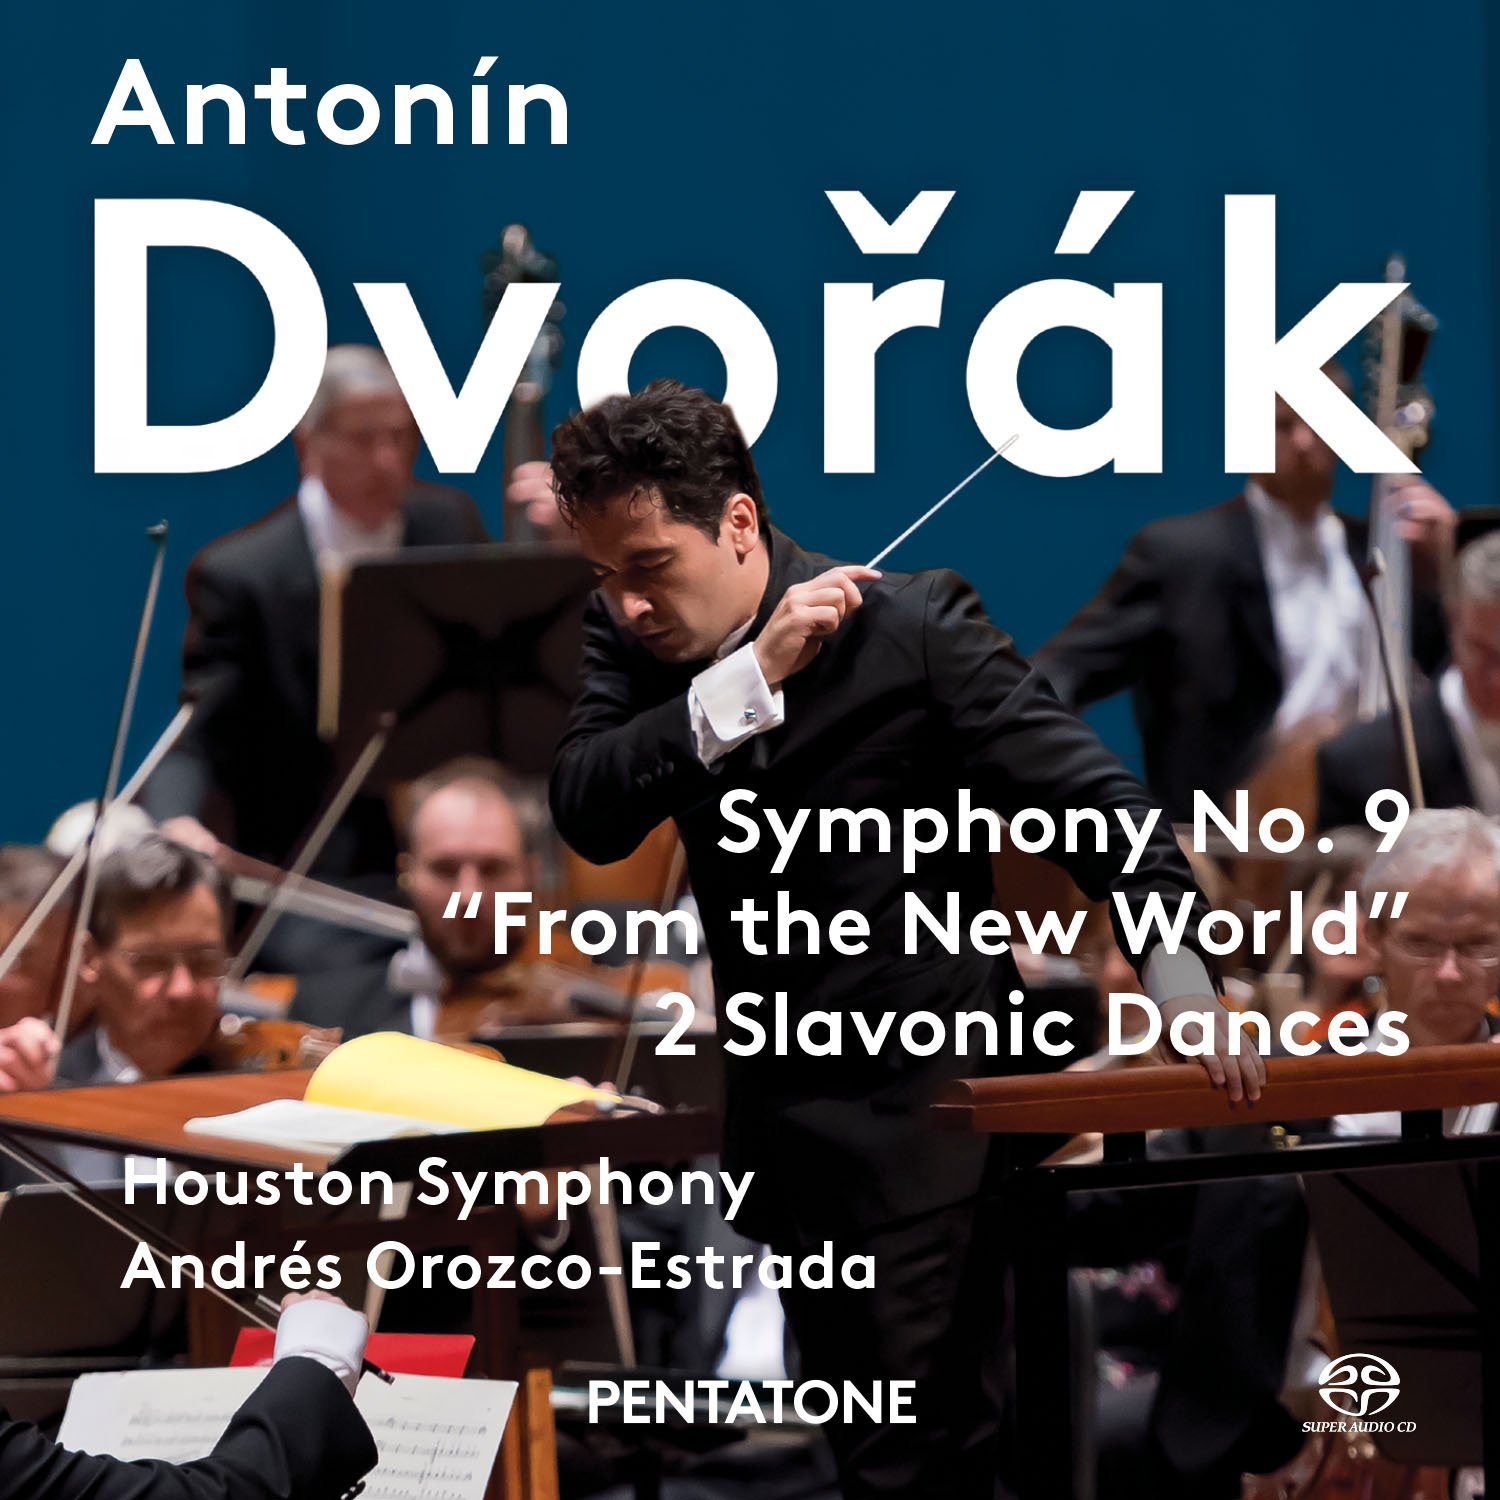 houston symphony antonin dvor aacute k andr eacute s orozco estrada dvor aacute k houston symphony antonin dvoraacutek andreacutes orozco estrada dvoraacutek symphony no 9 new world slavonic dances com music